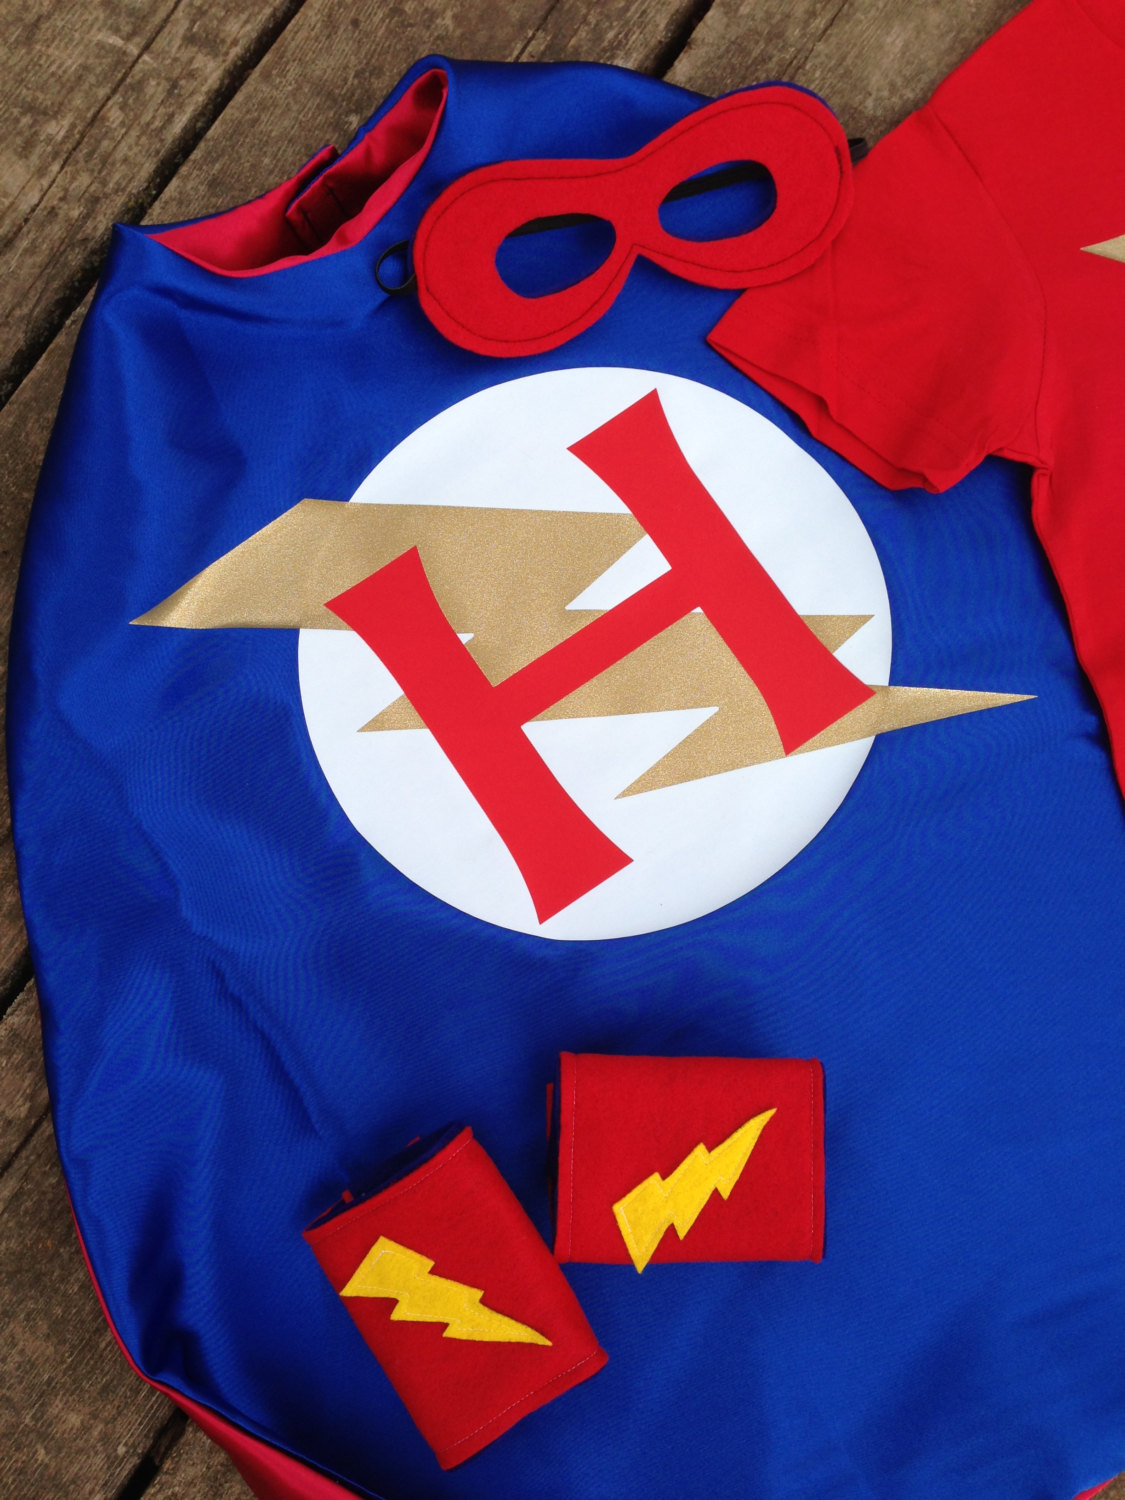 Personalized superhero cape t shirt mask and power cuffs for Cape designs